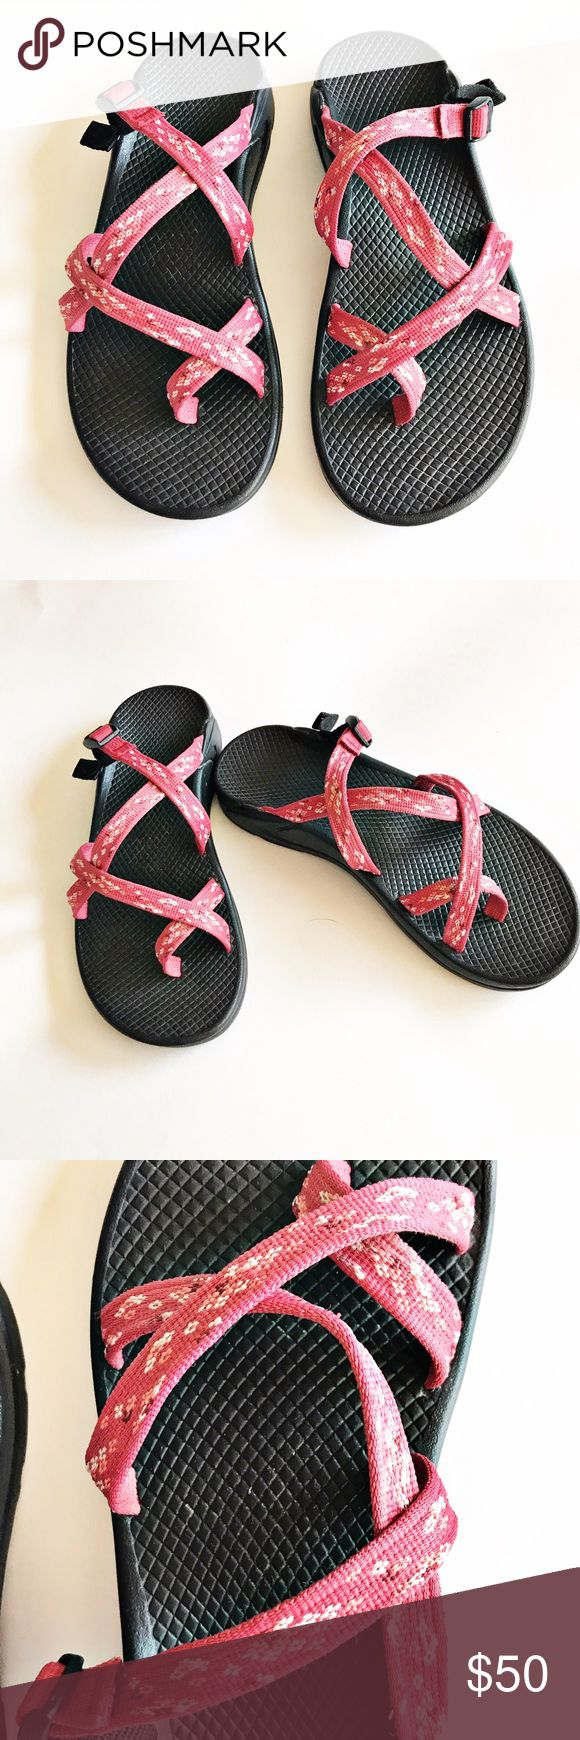 Chaco Zong Ecotread Sandal Chaco Zong Ecotread reddish-pink Sandals. Adjustable straps provide secure, comfy fit. Non-marking rubber soles. Manufacturer suggests to order a 1/2 size up because this style runs small. Chaco Shoes Sandals